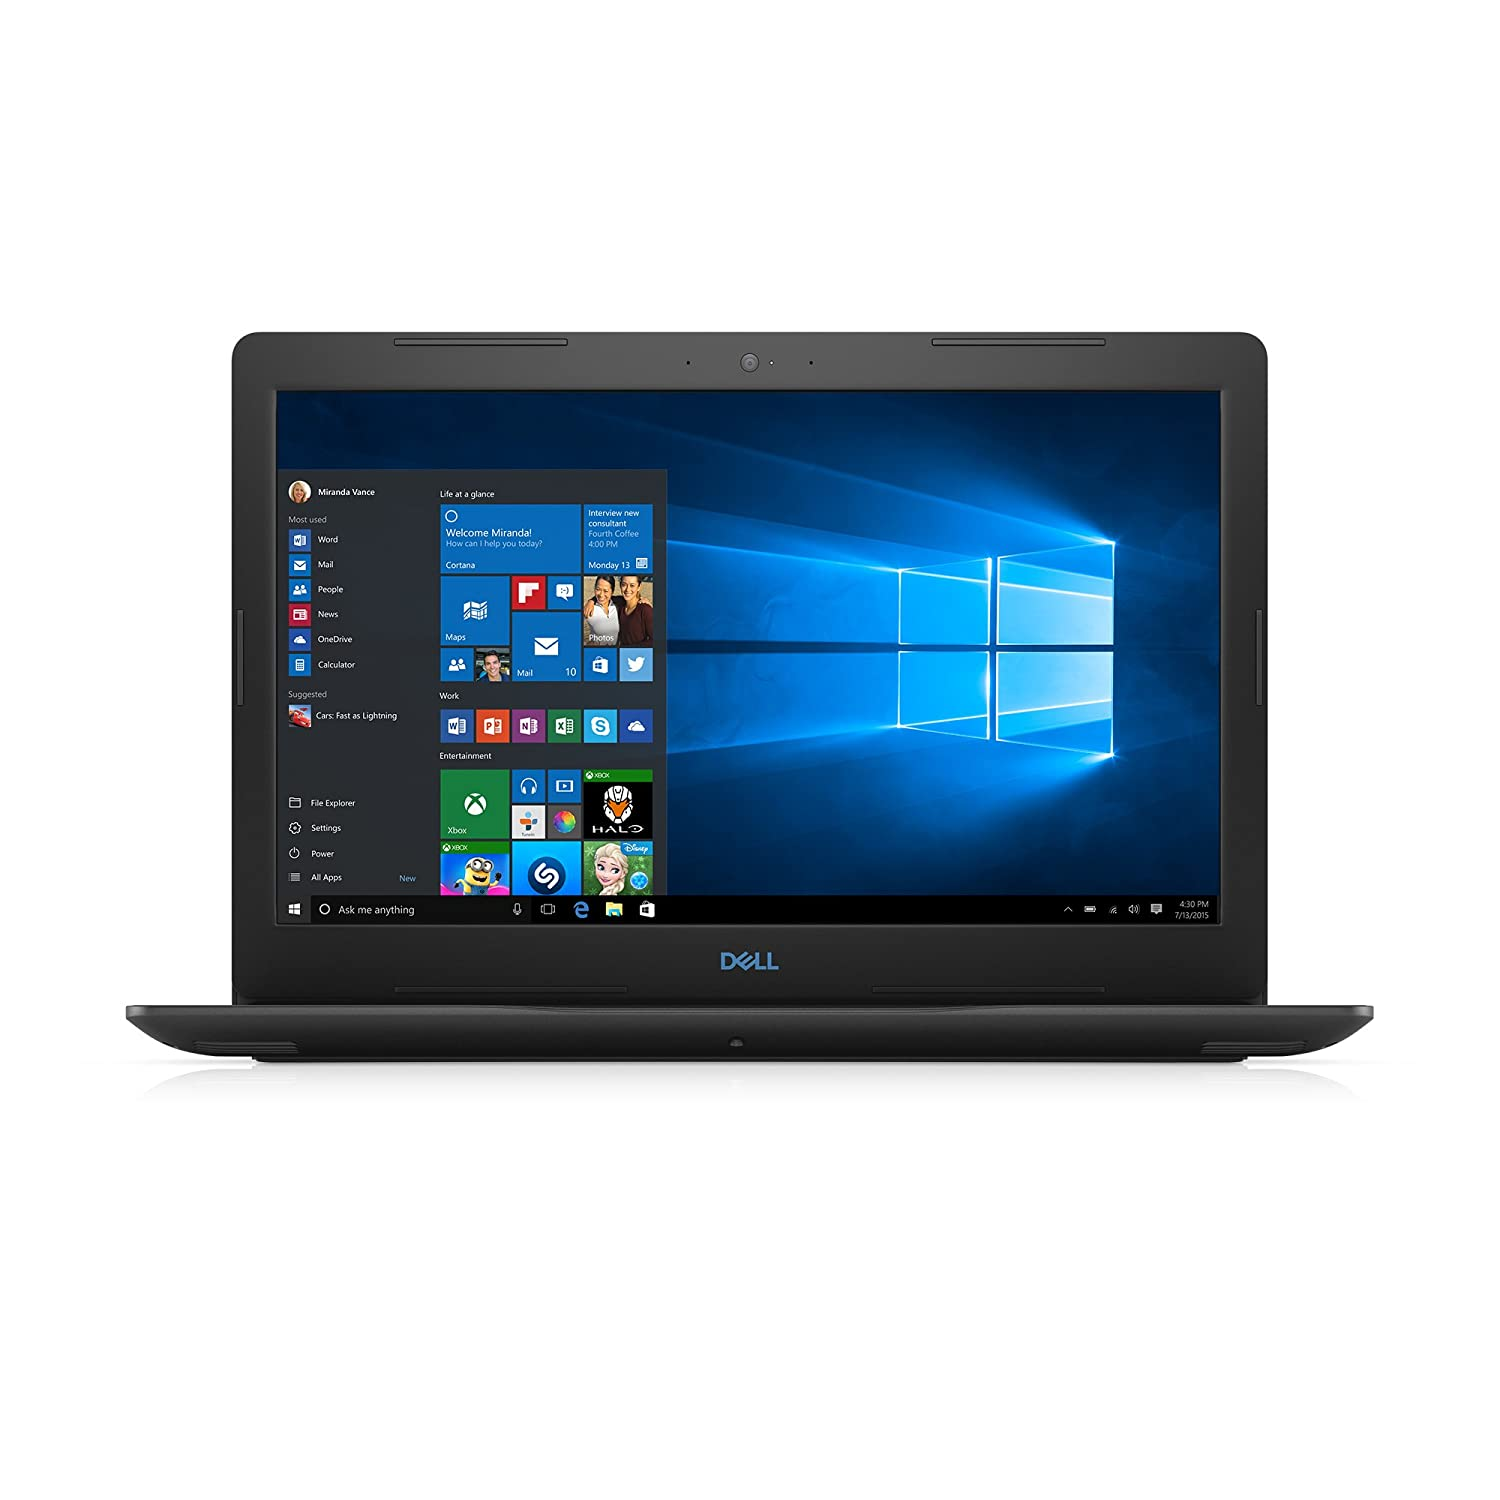 Dell G3 Laptop Black Friday Deal 2019